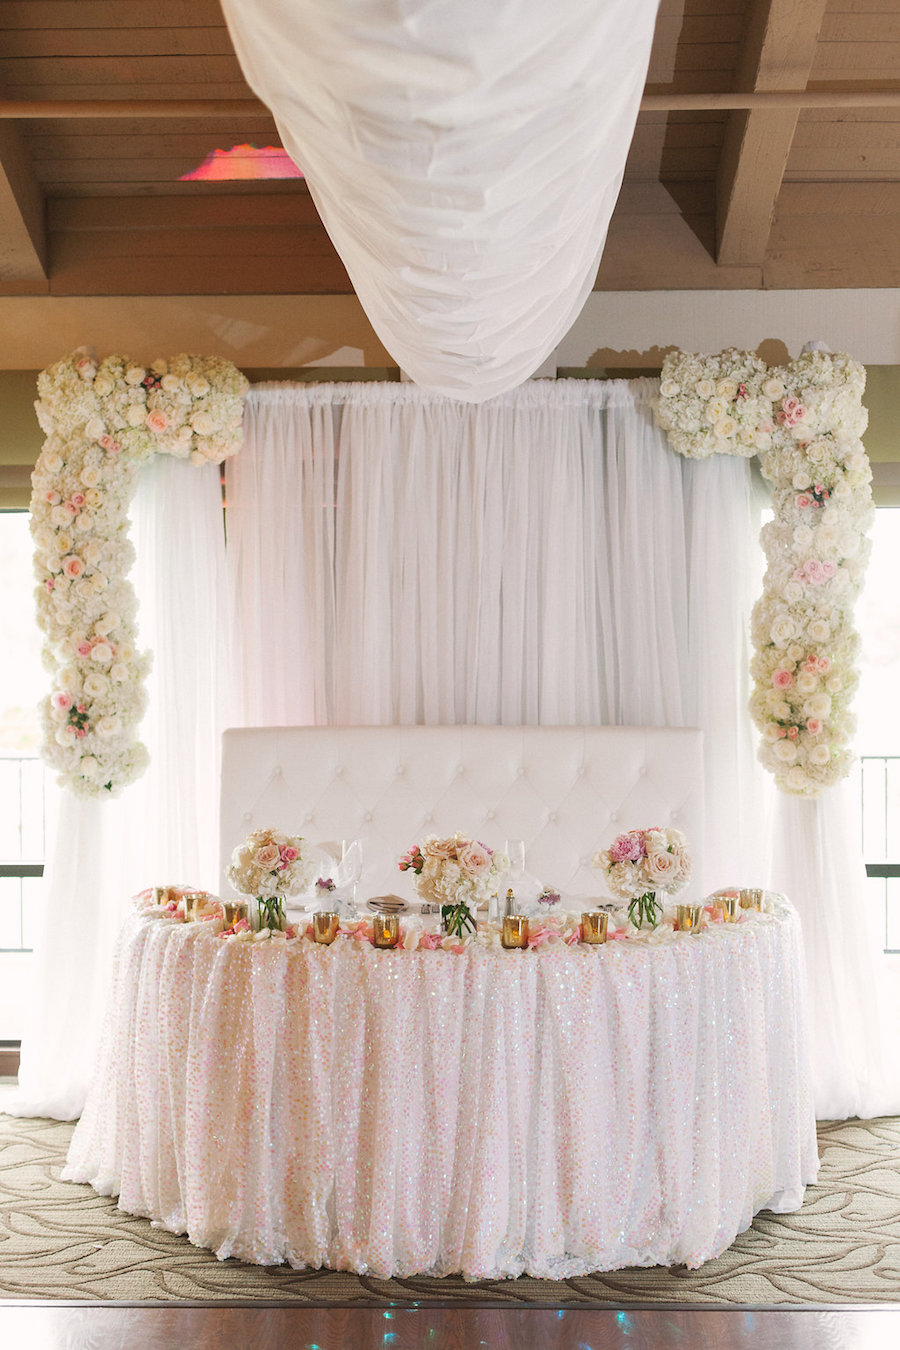 Blush Pink and Ivory White Wedding Reception with Draping and Floral Decor at Clearwater Venue Countryside Country Club